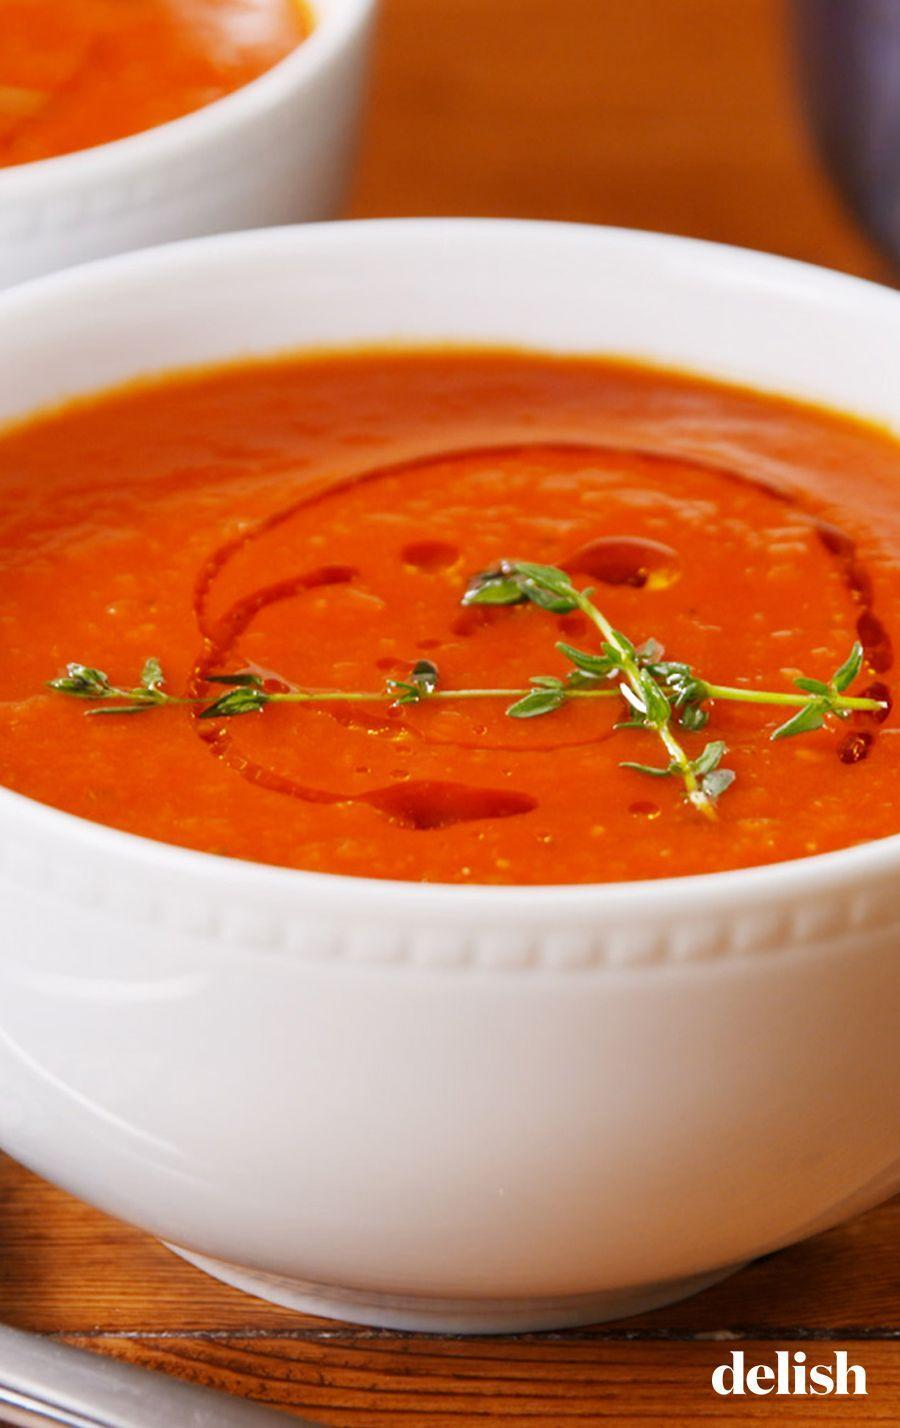 """<p>There's really nothing more comforting than a steaming hot bowl of tomato soup. </p><p>Get the recipe from <a href=""""https://www.delish.com/cooking/recipe-ideas/a23513895/classic-tomato-soup-recipe/"""" rel=""""nofollow noopener"""" target=""""_blank"""" data-ylk=""""slk:Delish"""" class=""""link rapid-noclick-resp"""">Delish</a>. </p>"""